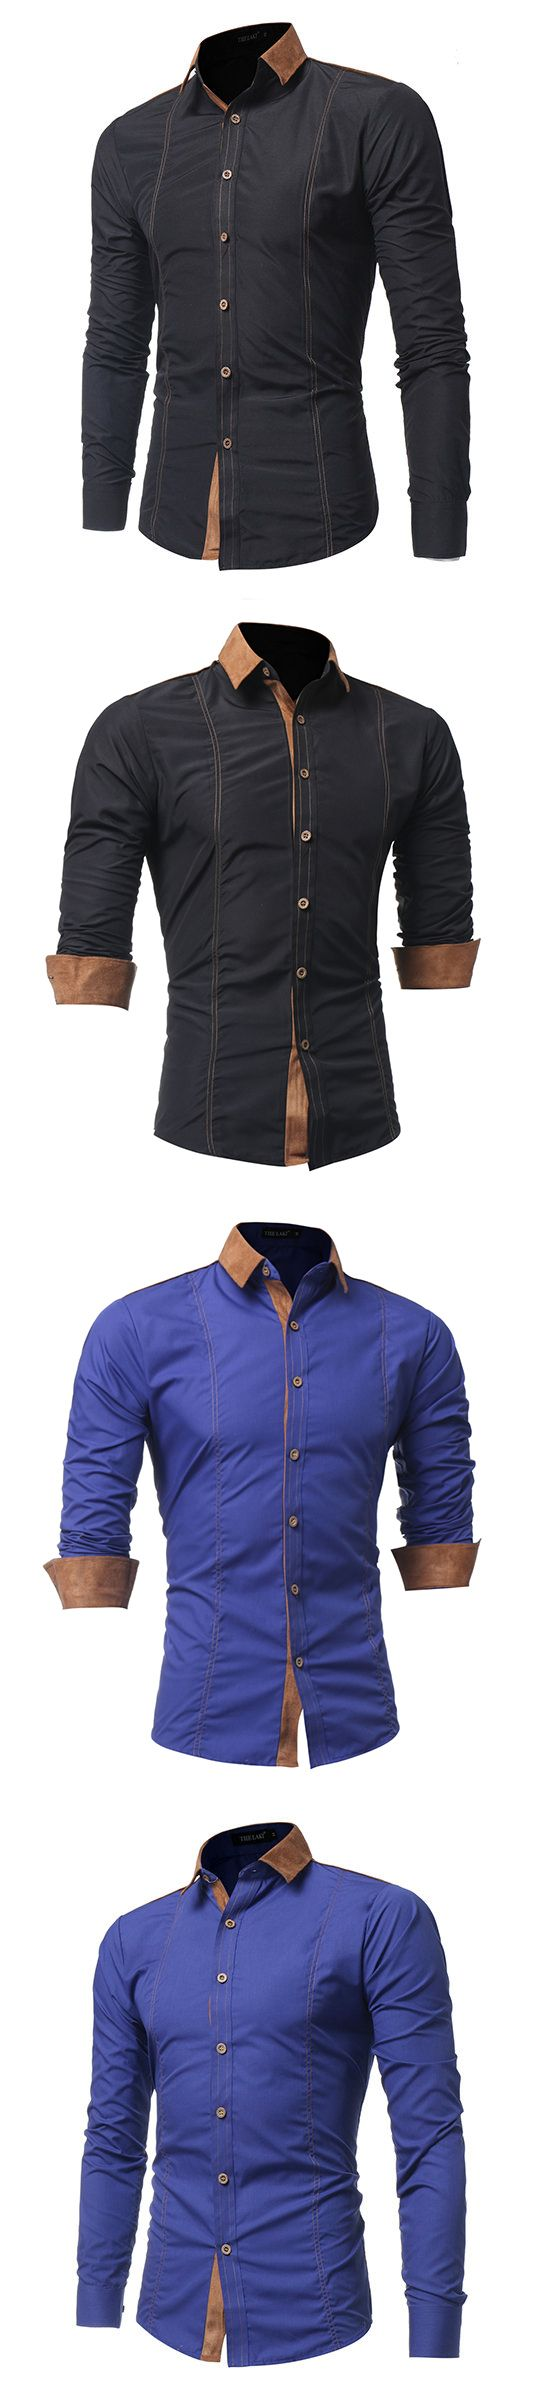 US$20.41 (47% OFF) Fall Outfit:Designer Dress Shirt for Men